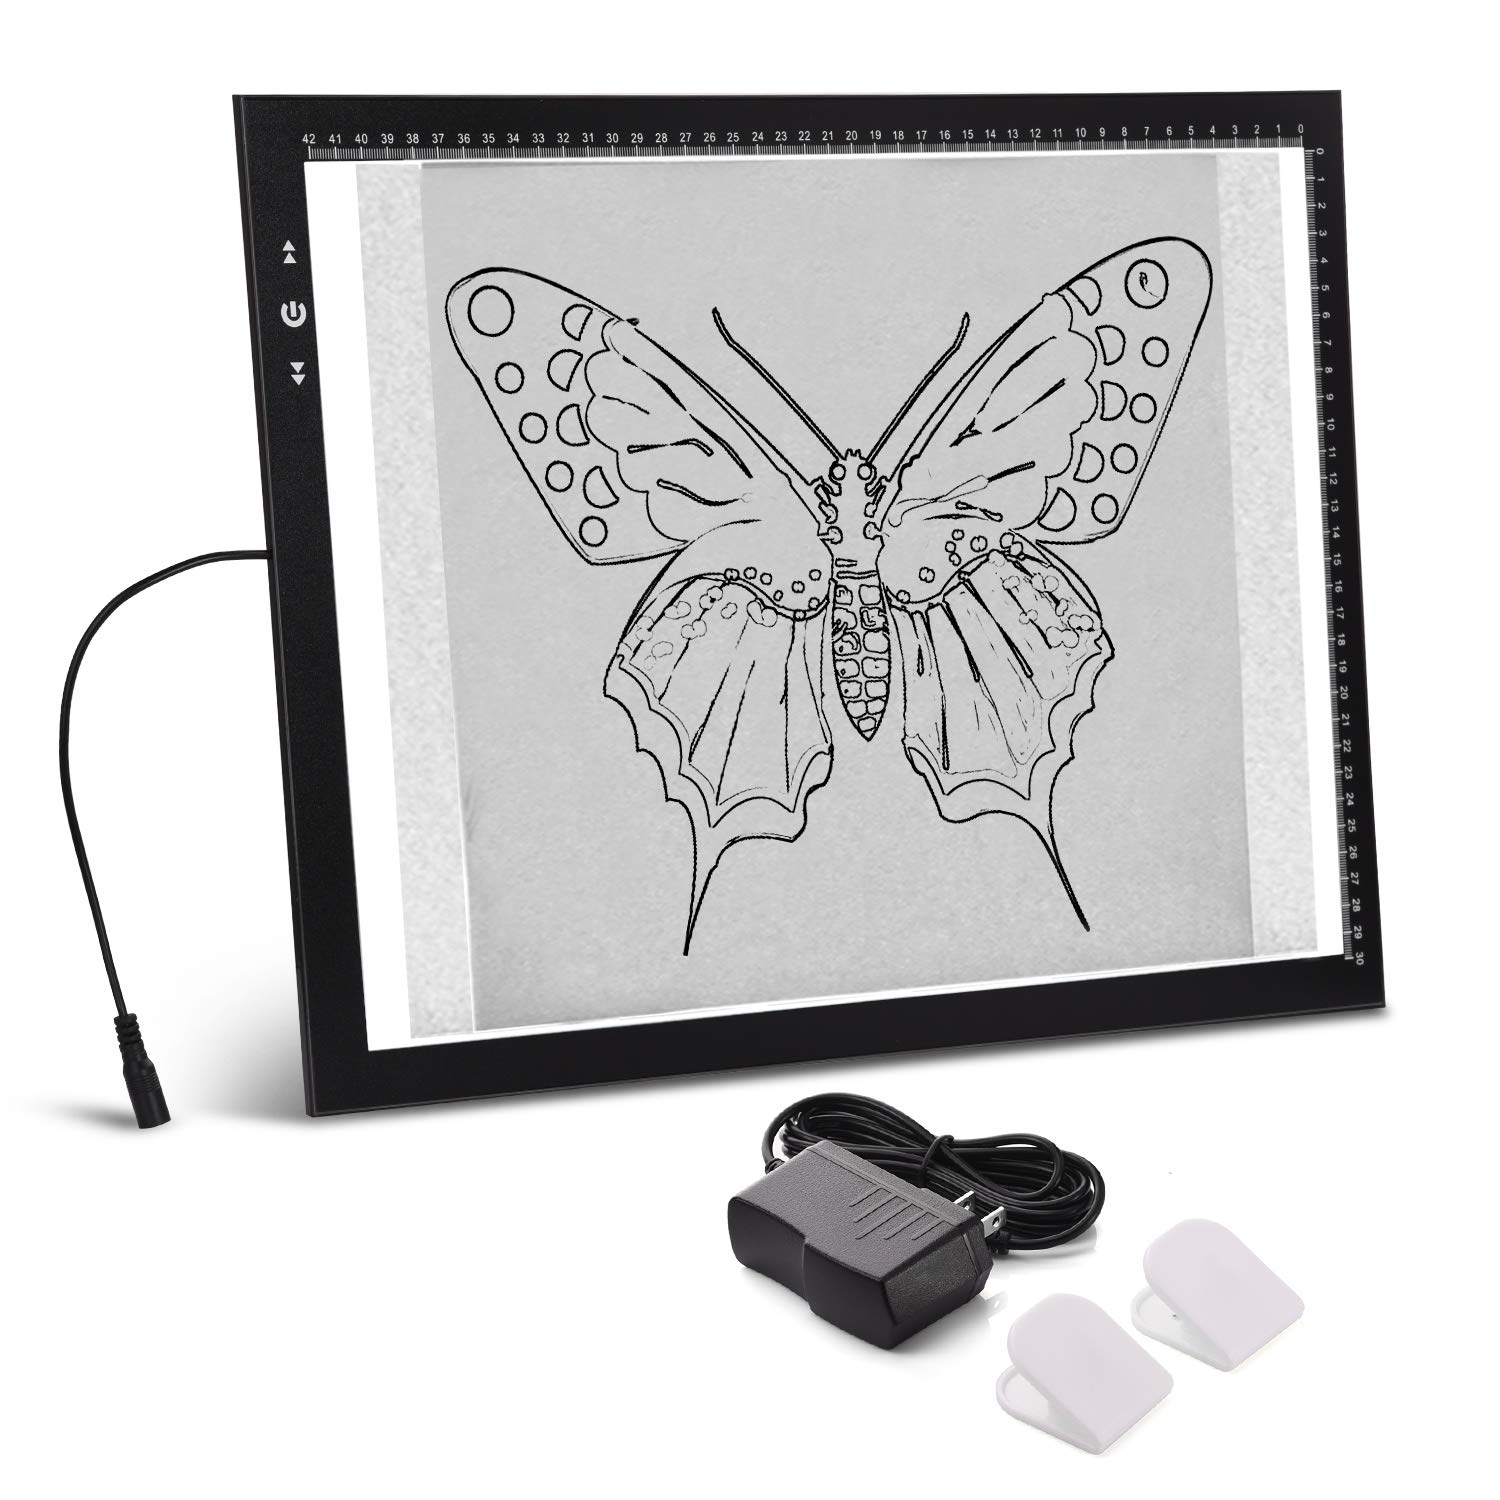 A3 Light Box Light Pad Aluminium Frame Touch Dimmer 11W Super Bright Max 3500 Lux with Free Carry/Storage Bag 2 Years Warranty (A3 Light pad) by HSK